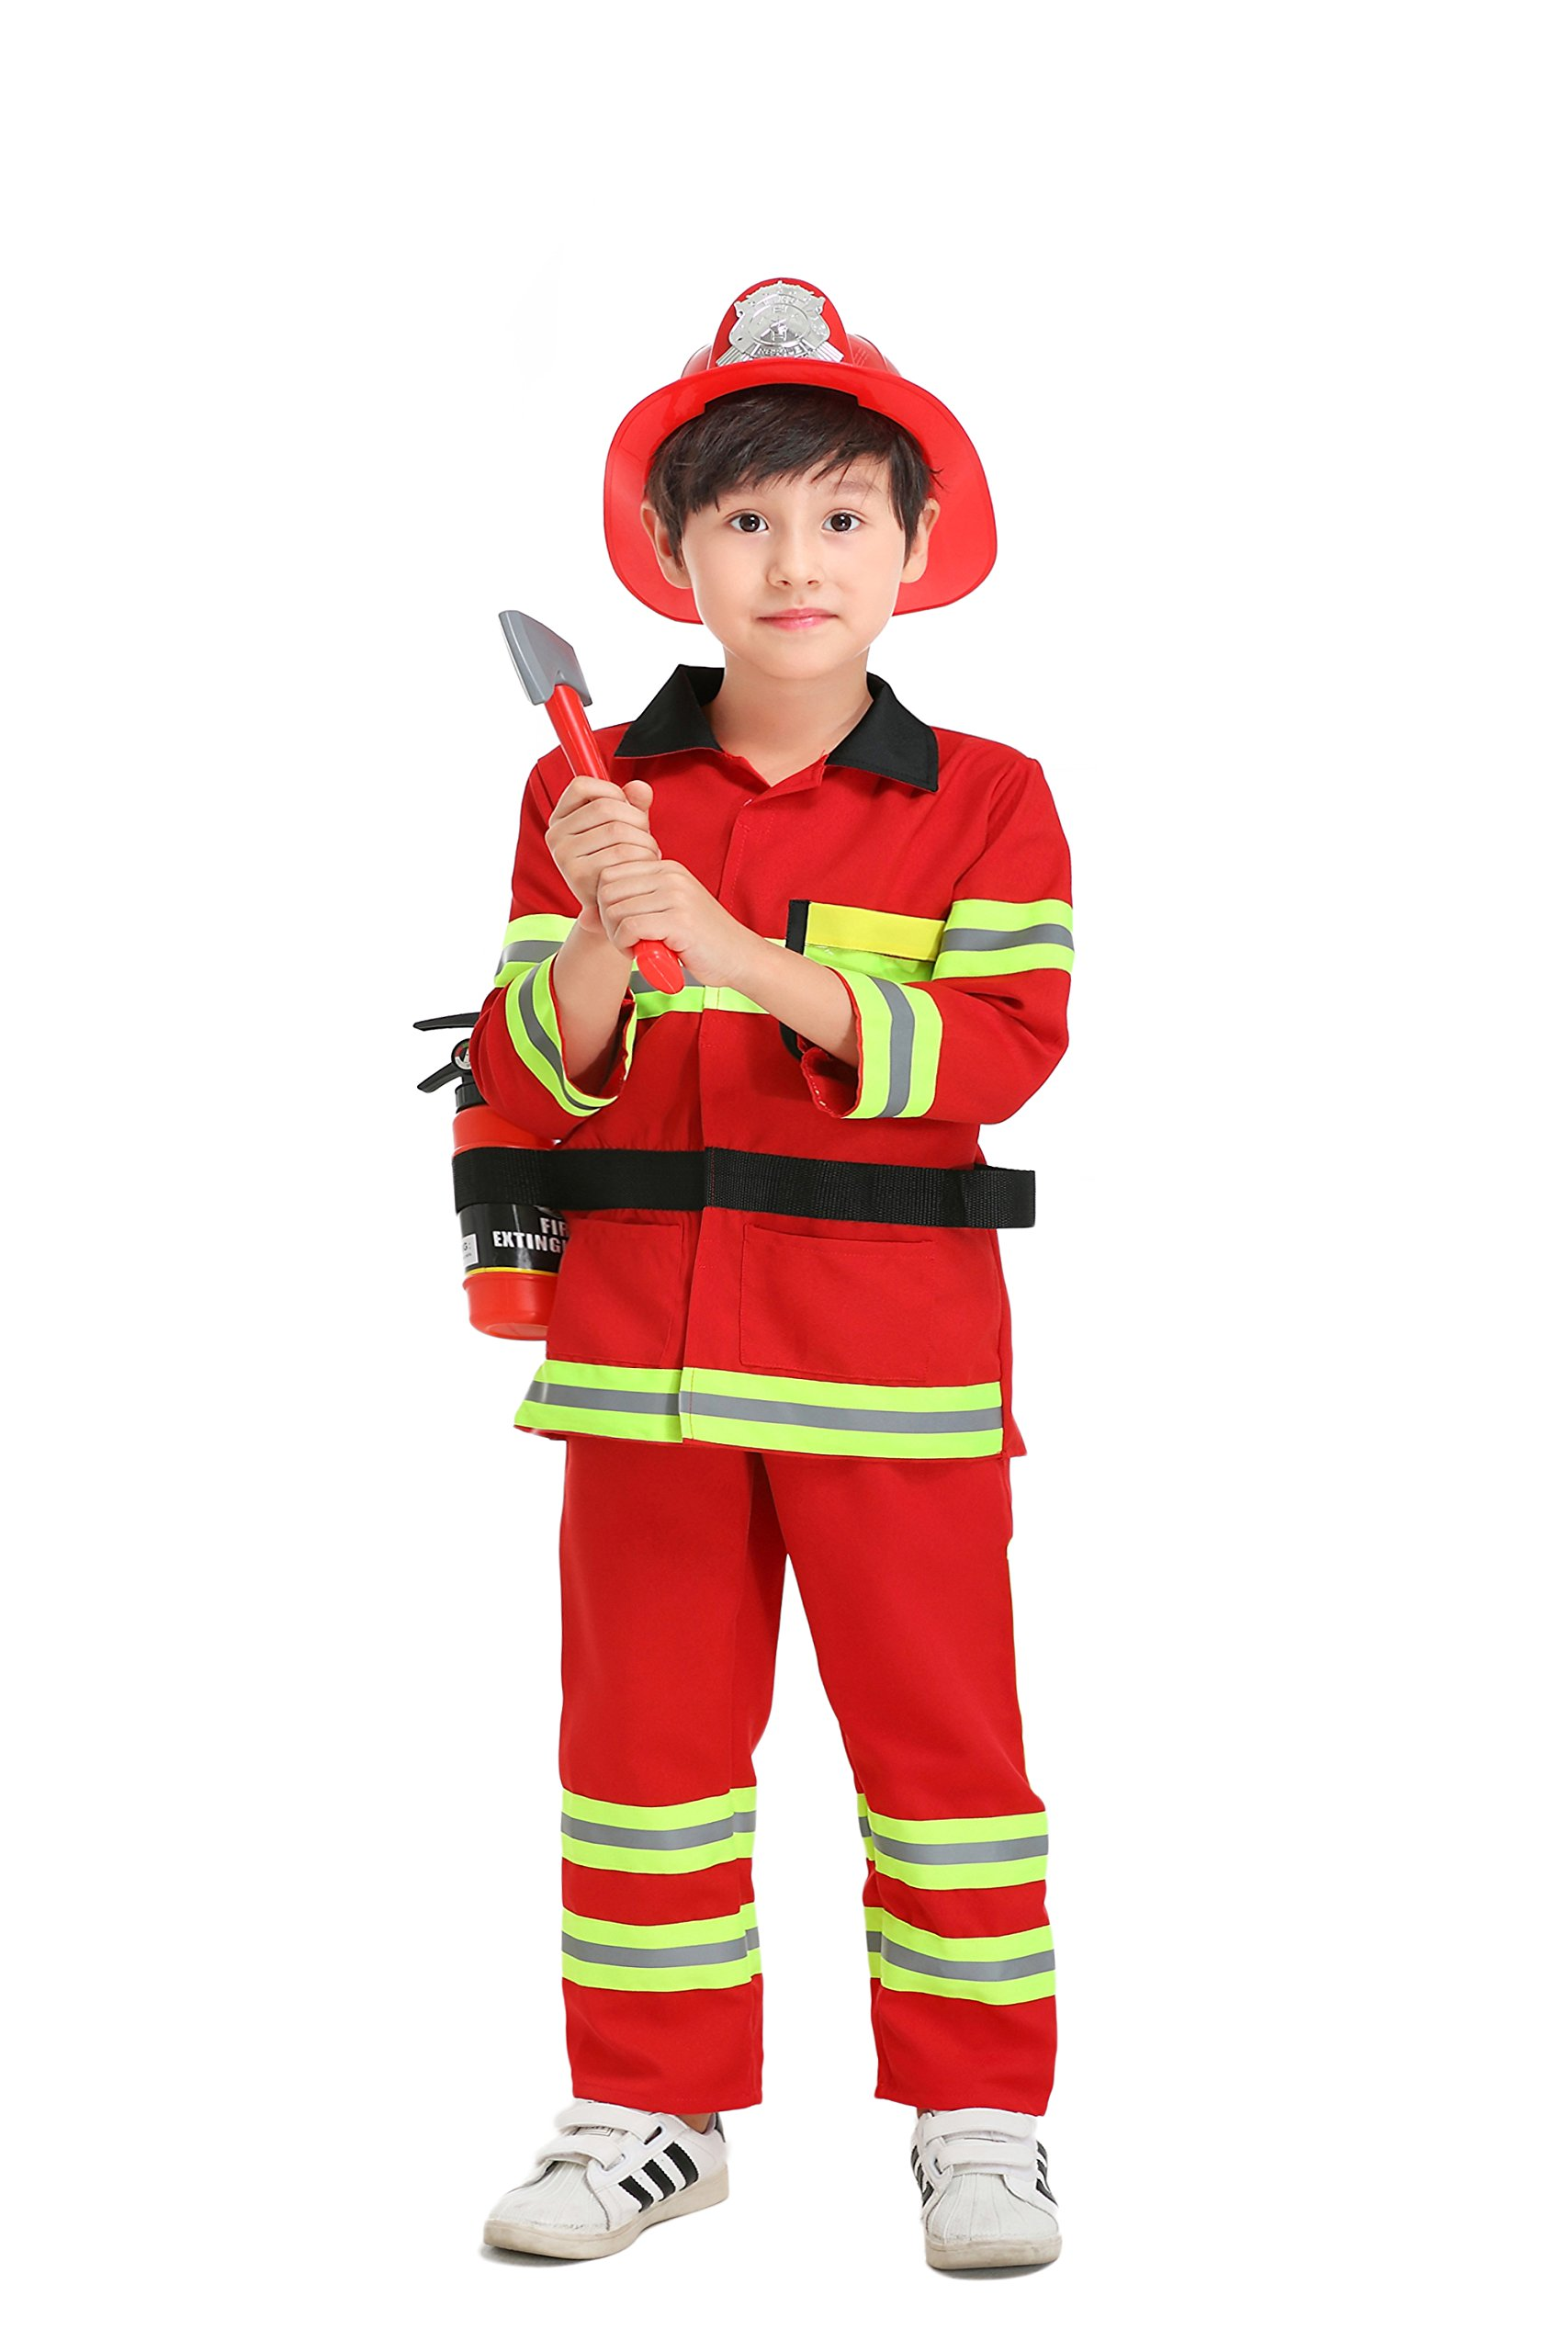 YOLSUN Fireman Role Play Costume for Kids, Boys' and Girls' Firefighter Dress up and Play Set (7 pcs) (4-5y, red)